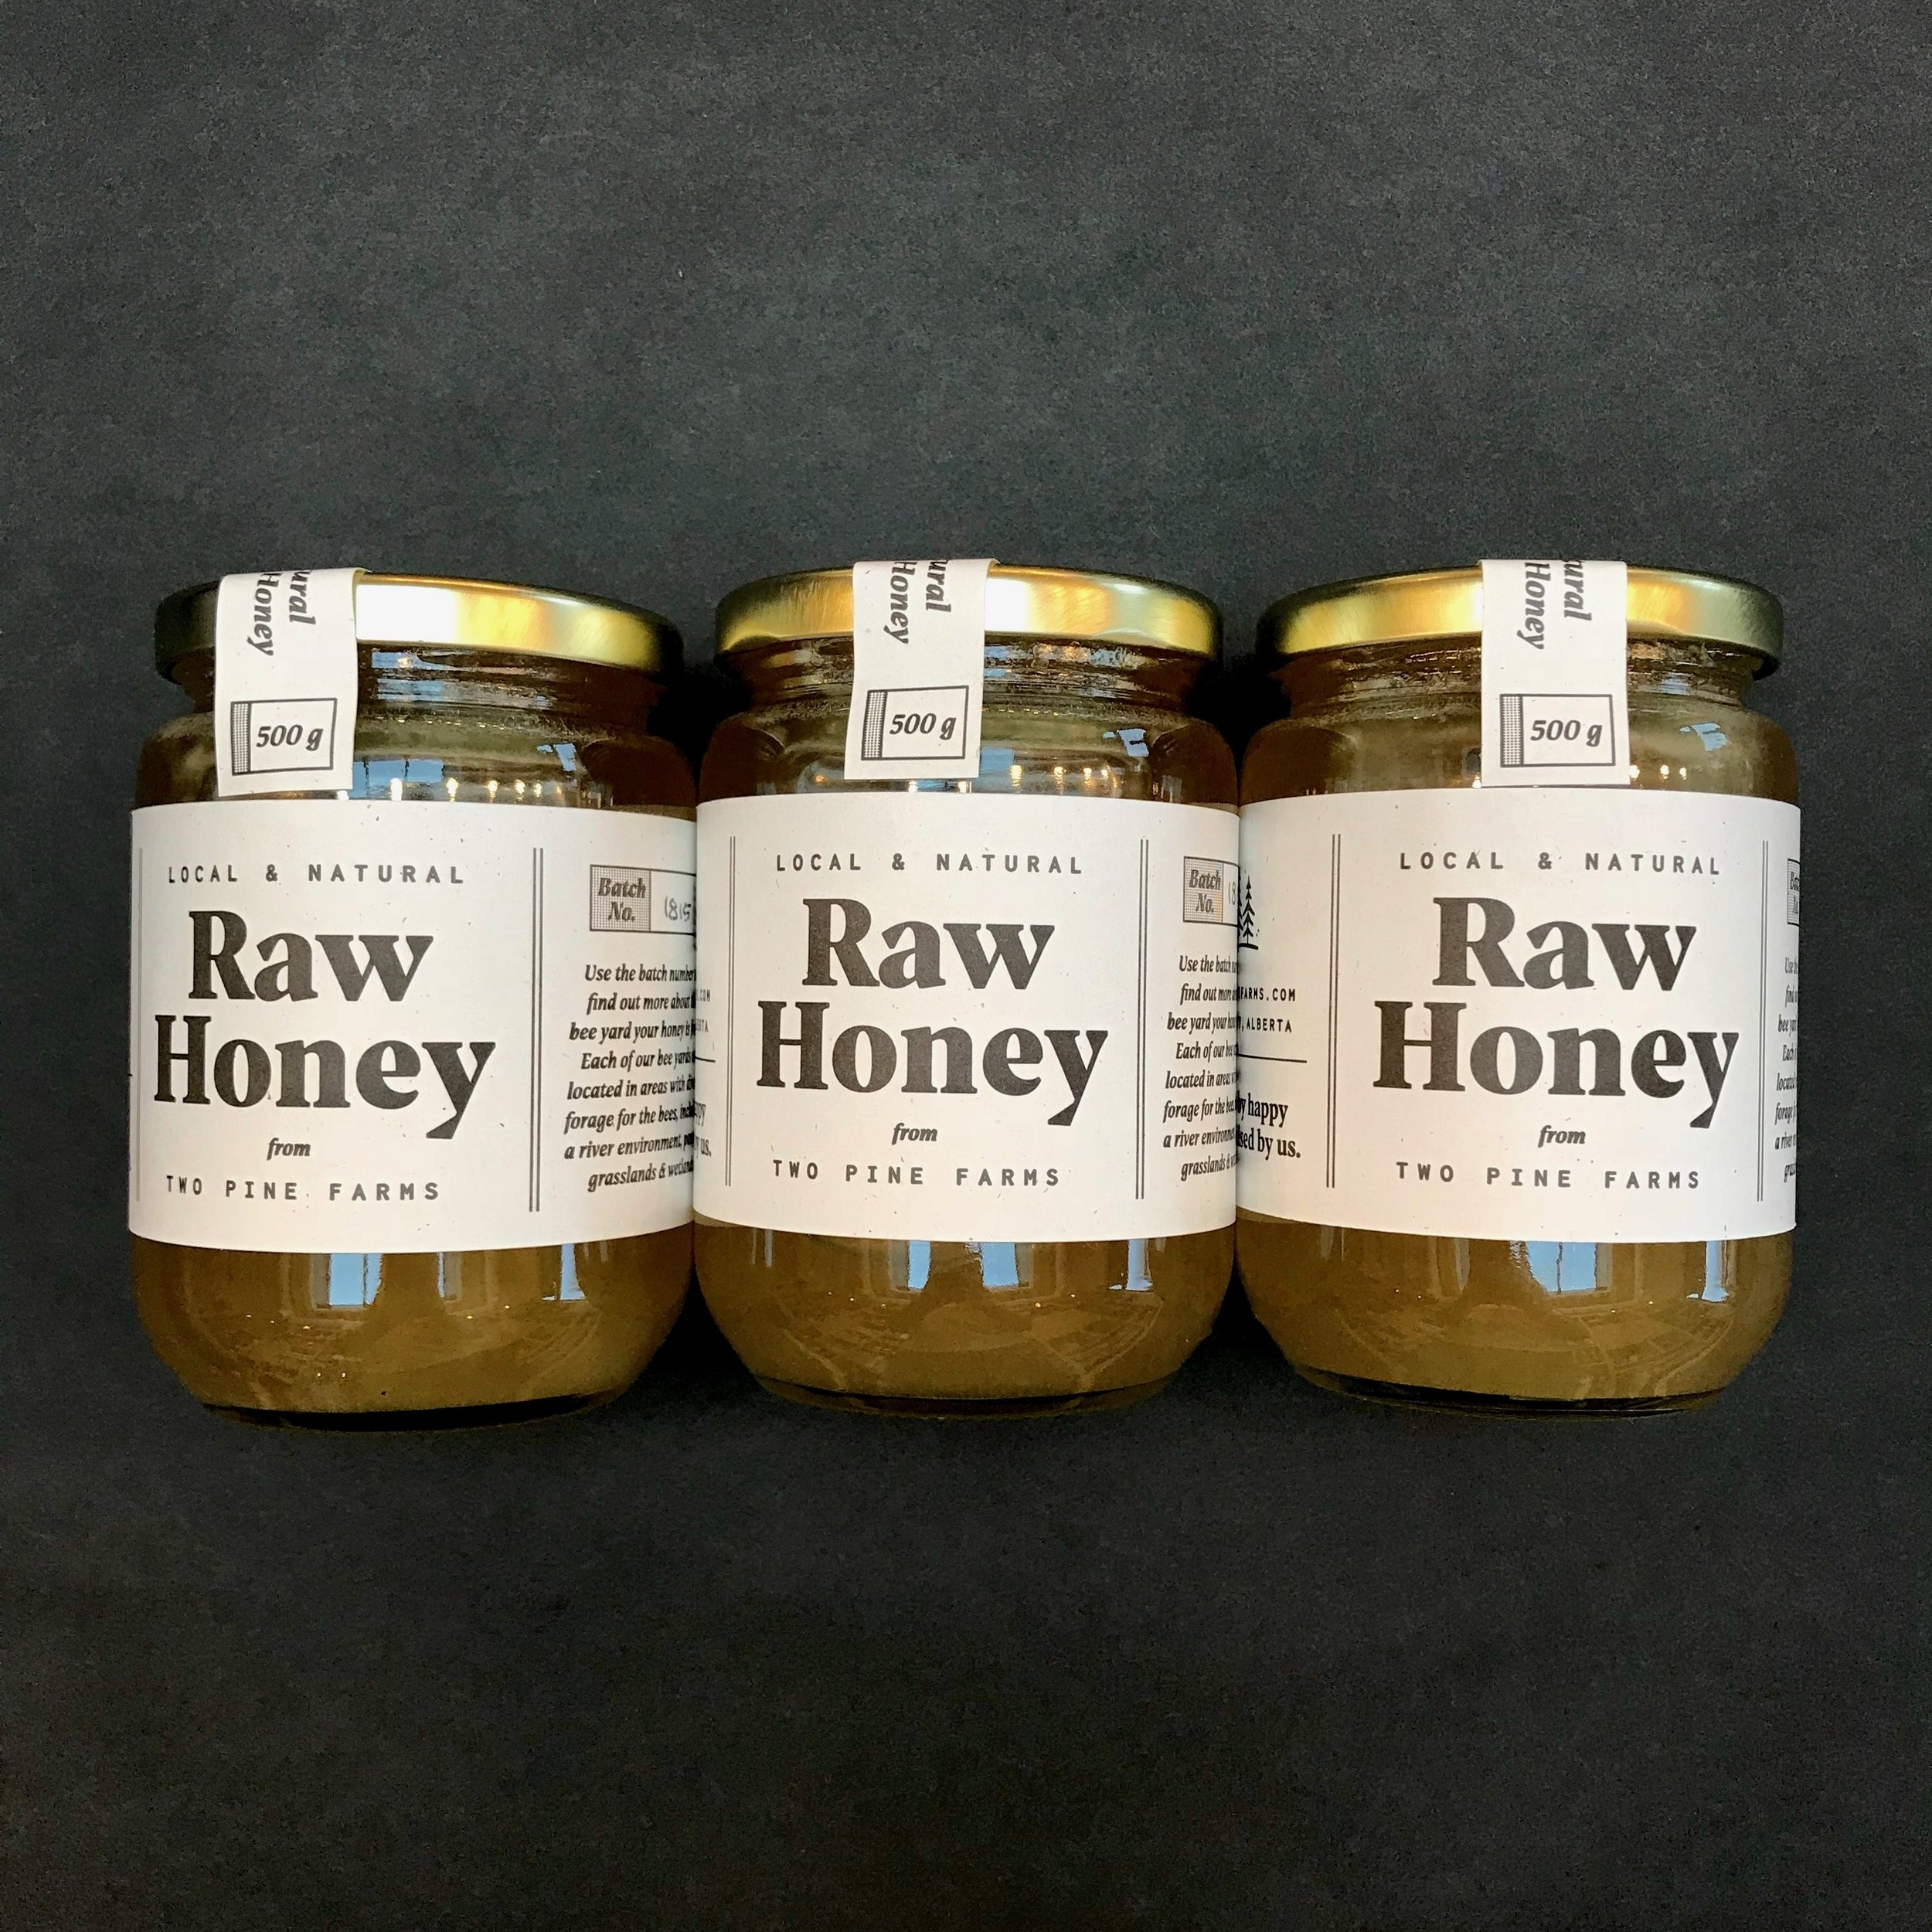 After relentless hounding, Two Pines Farms finally gave in and sold us their honey.  All joking aside, this honey tastes amazing, is traceable and they just released new packaging designed by our friends over at Feast Letterpress.  If you look on each jar you can see the batch number of the honey you purchased.  You can take that batch number over to their website and see where the bees were hanging out and doing their thing.  How cool is that!